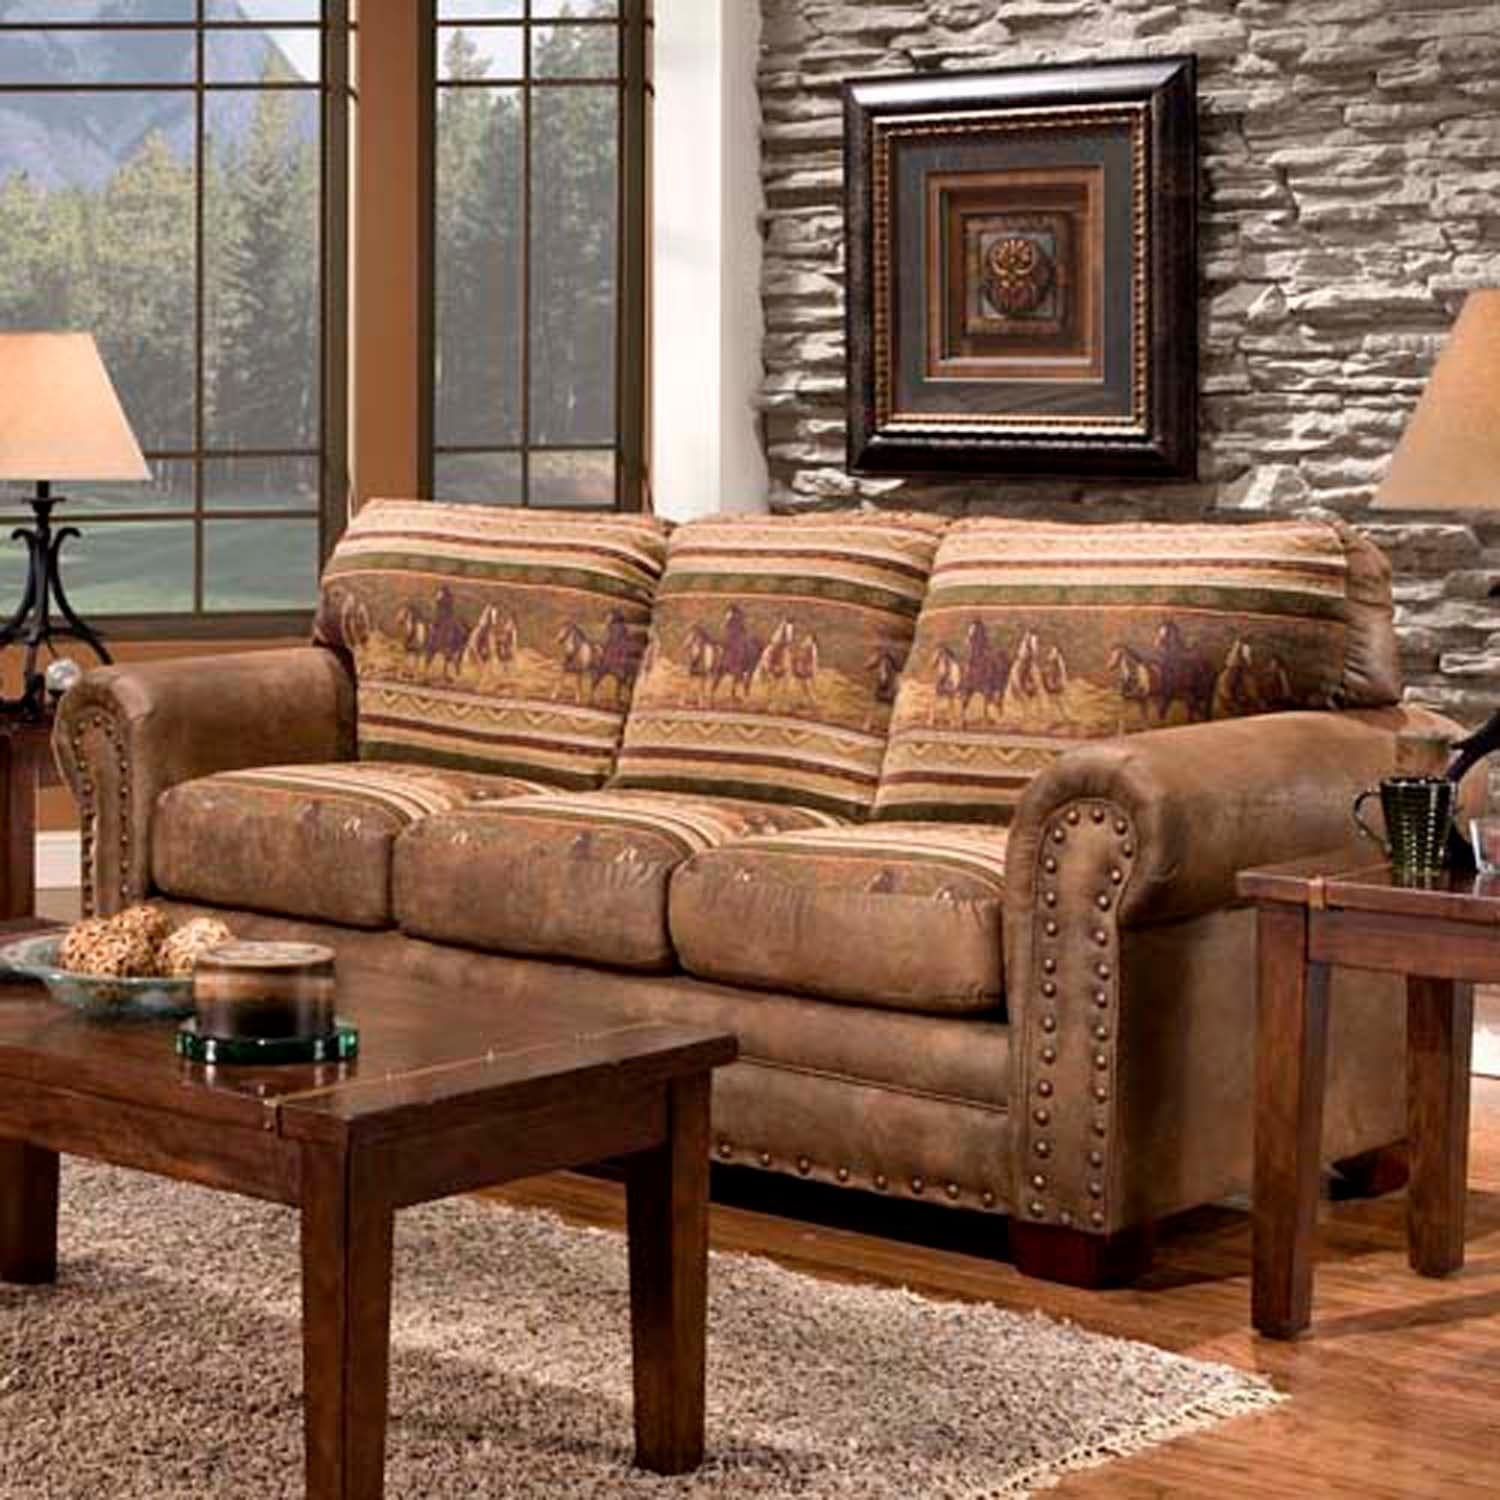 Country Leather Sofa: Wild Horses Sofa Couch Cabin Western Style Lodge Rustic